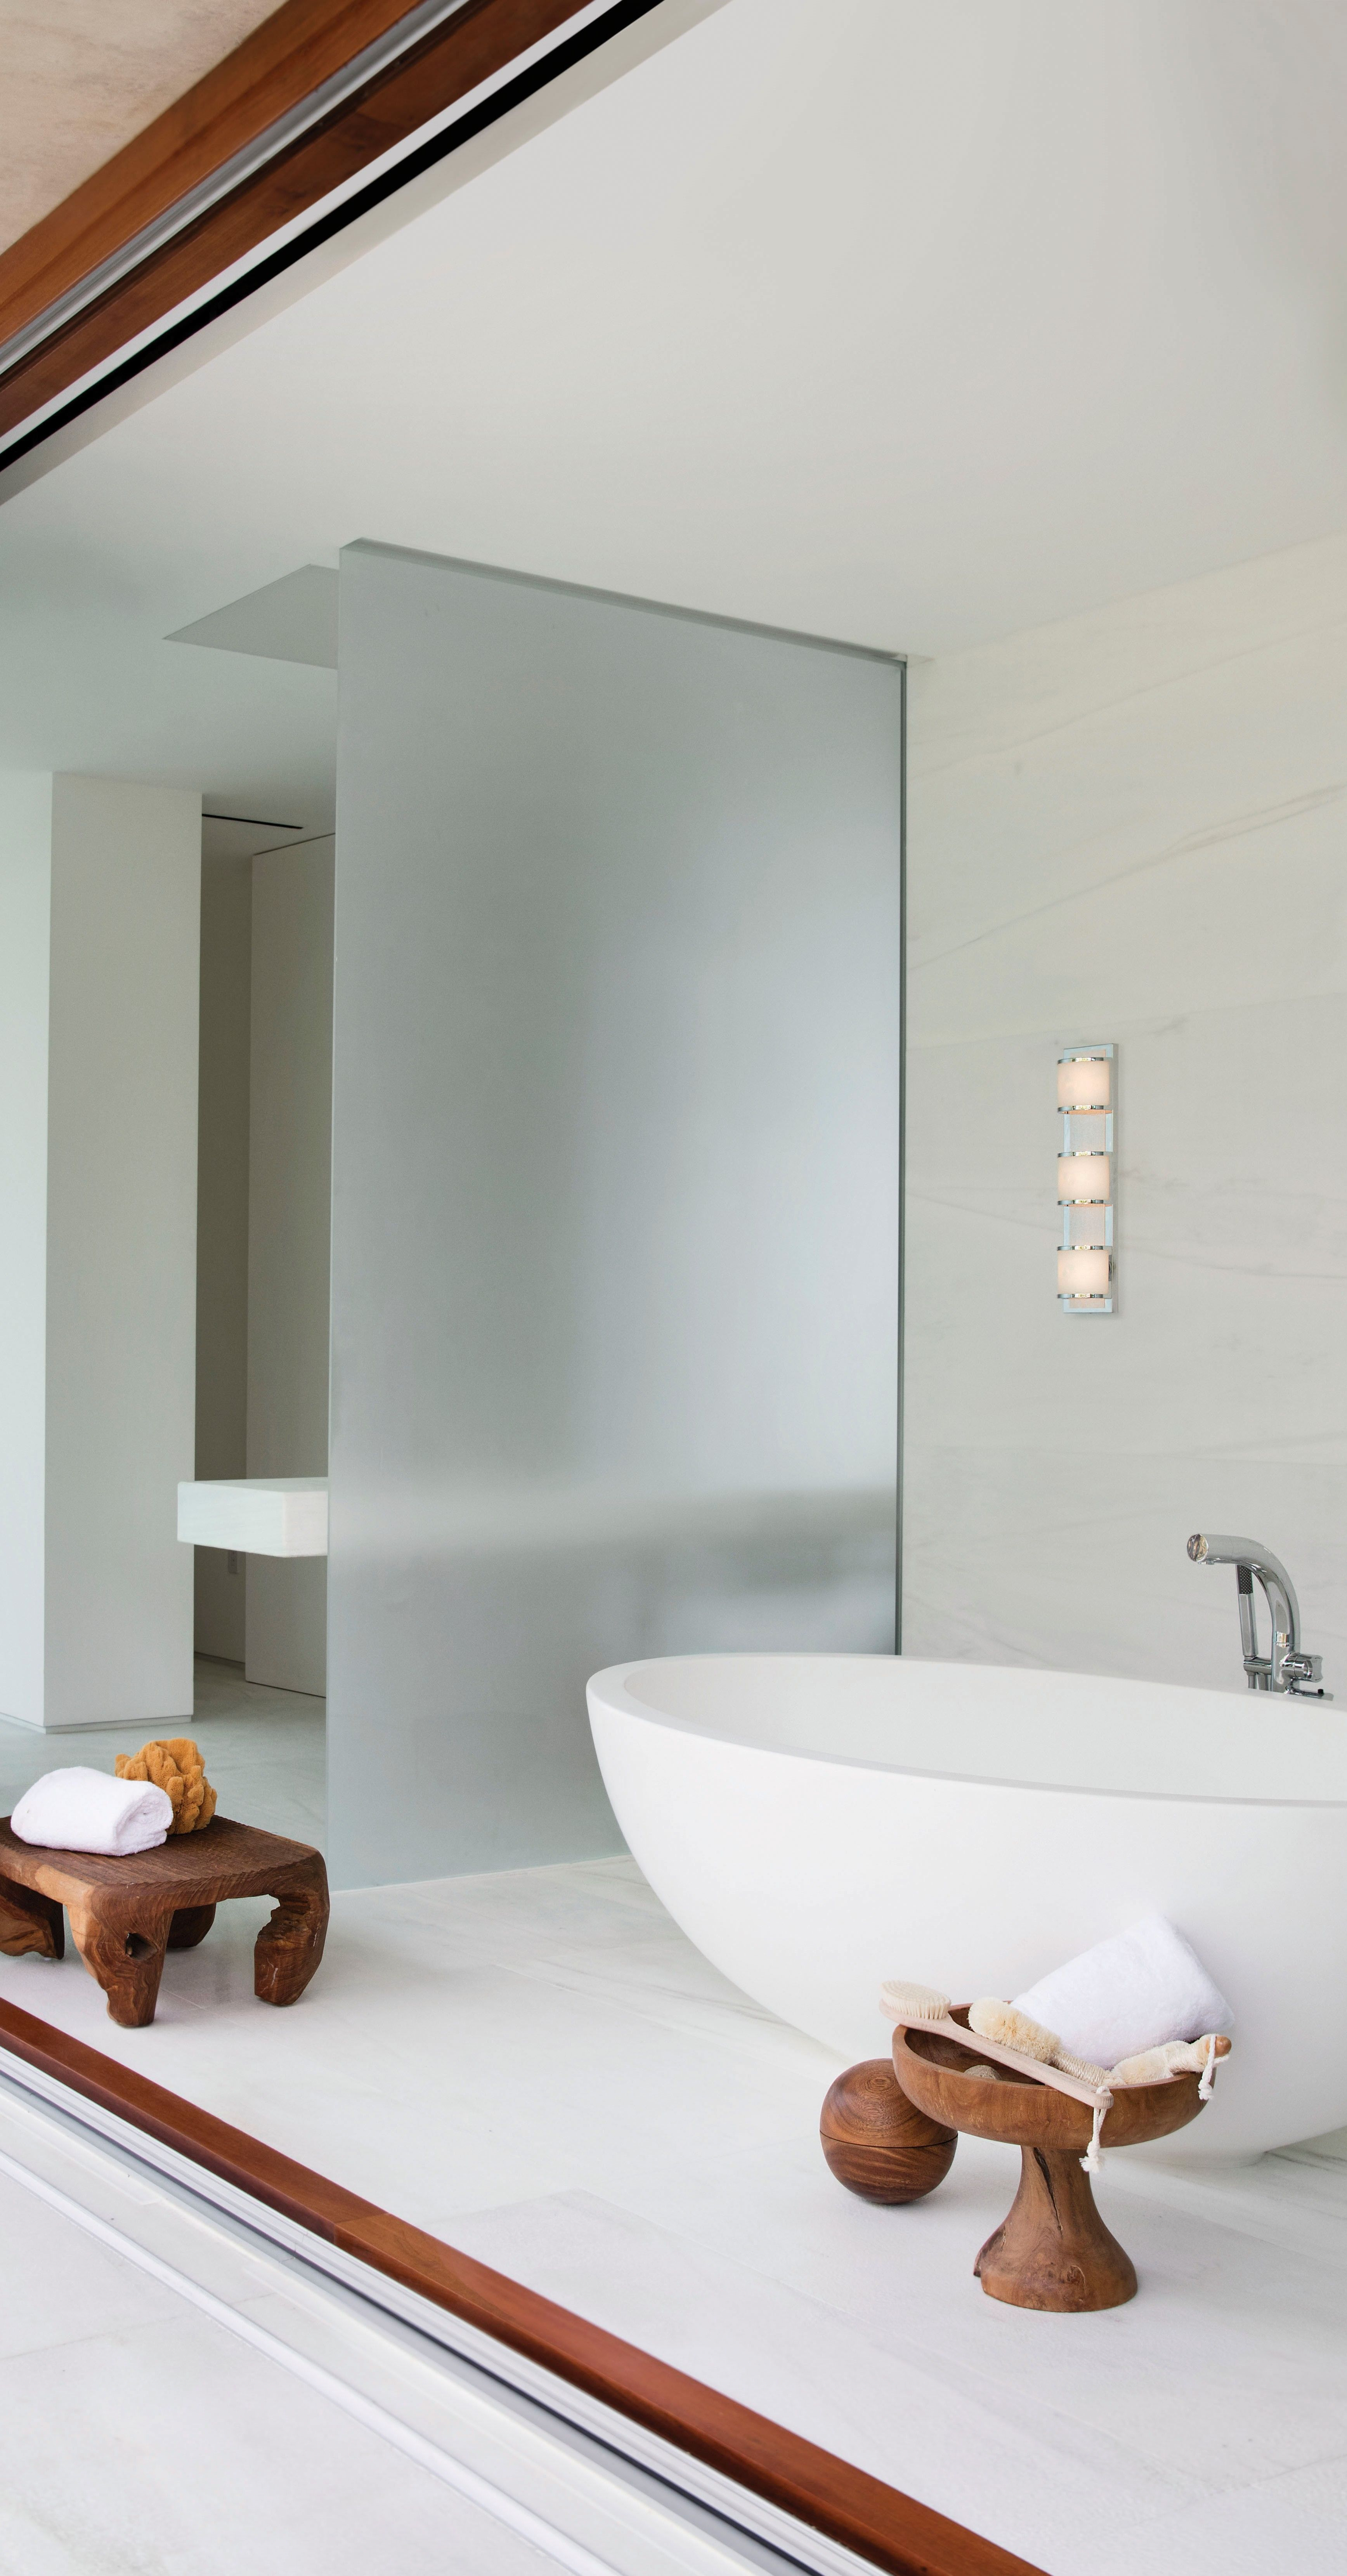 Modern White Bathroom With Frosted Glass And Bathtub Lit By Bathroom Wall Light Modern White Bathroom Bathroom Lighting Bathroom Wall Lights